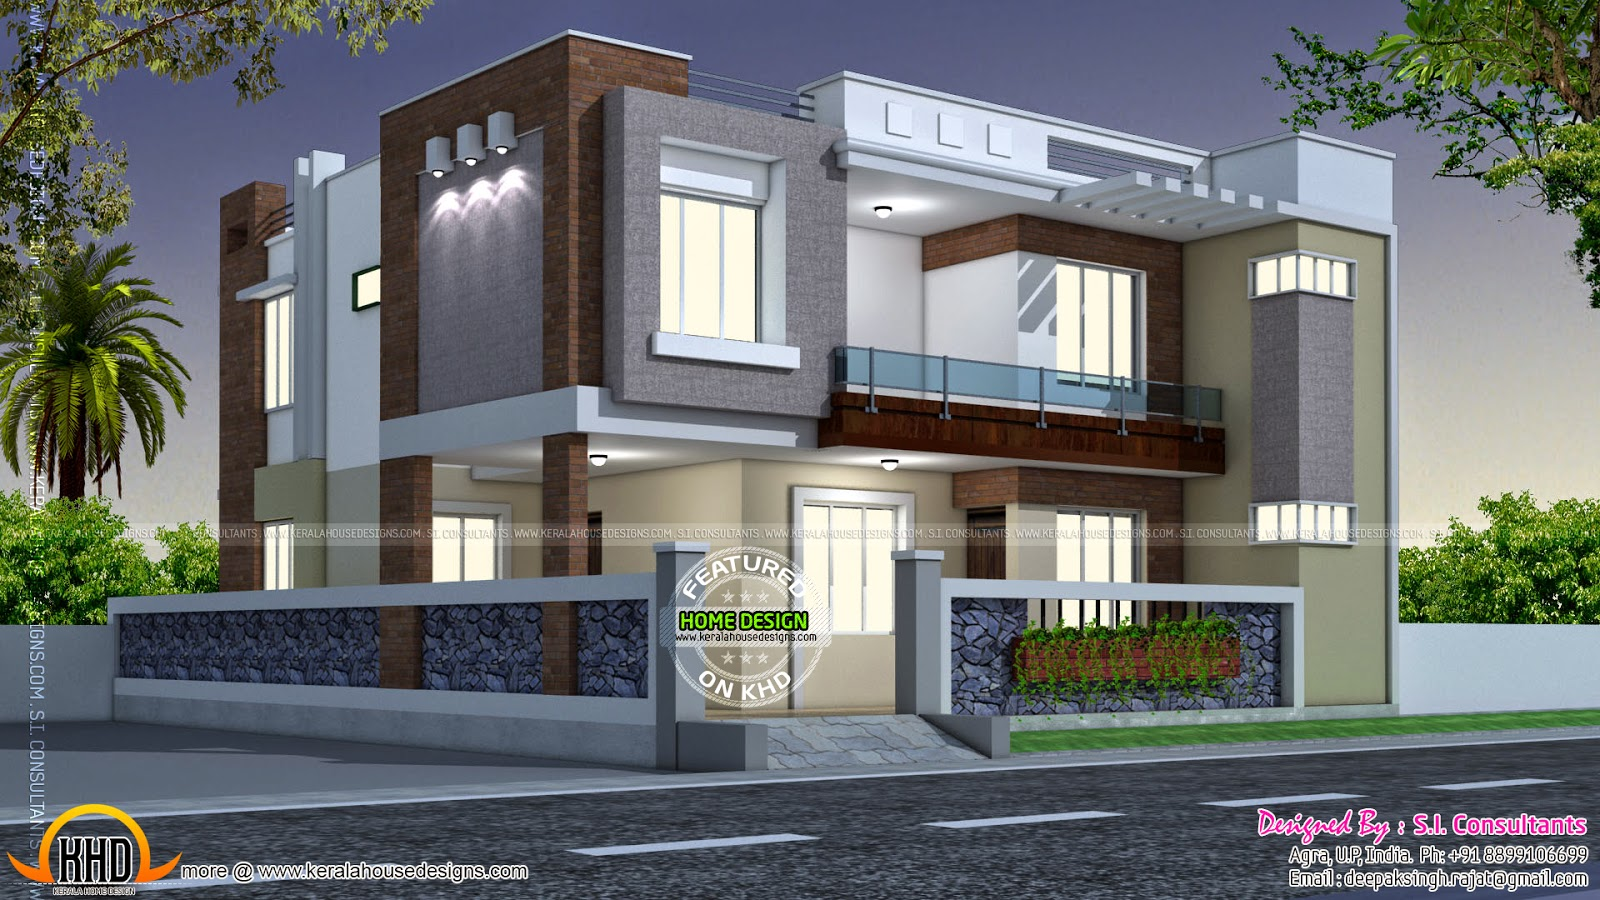 Modern style indian home kerala home design and floor plans for Home designs bangalore